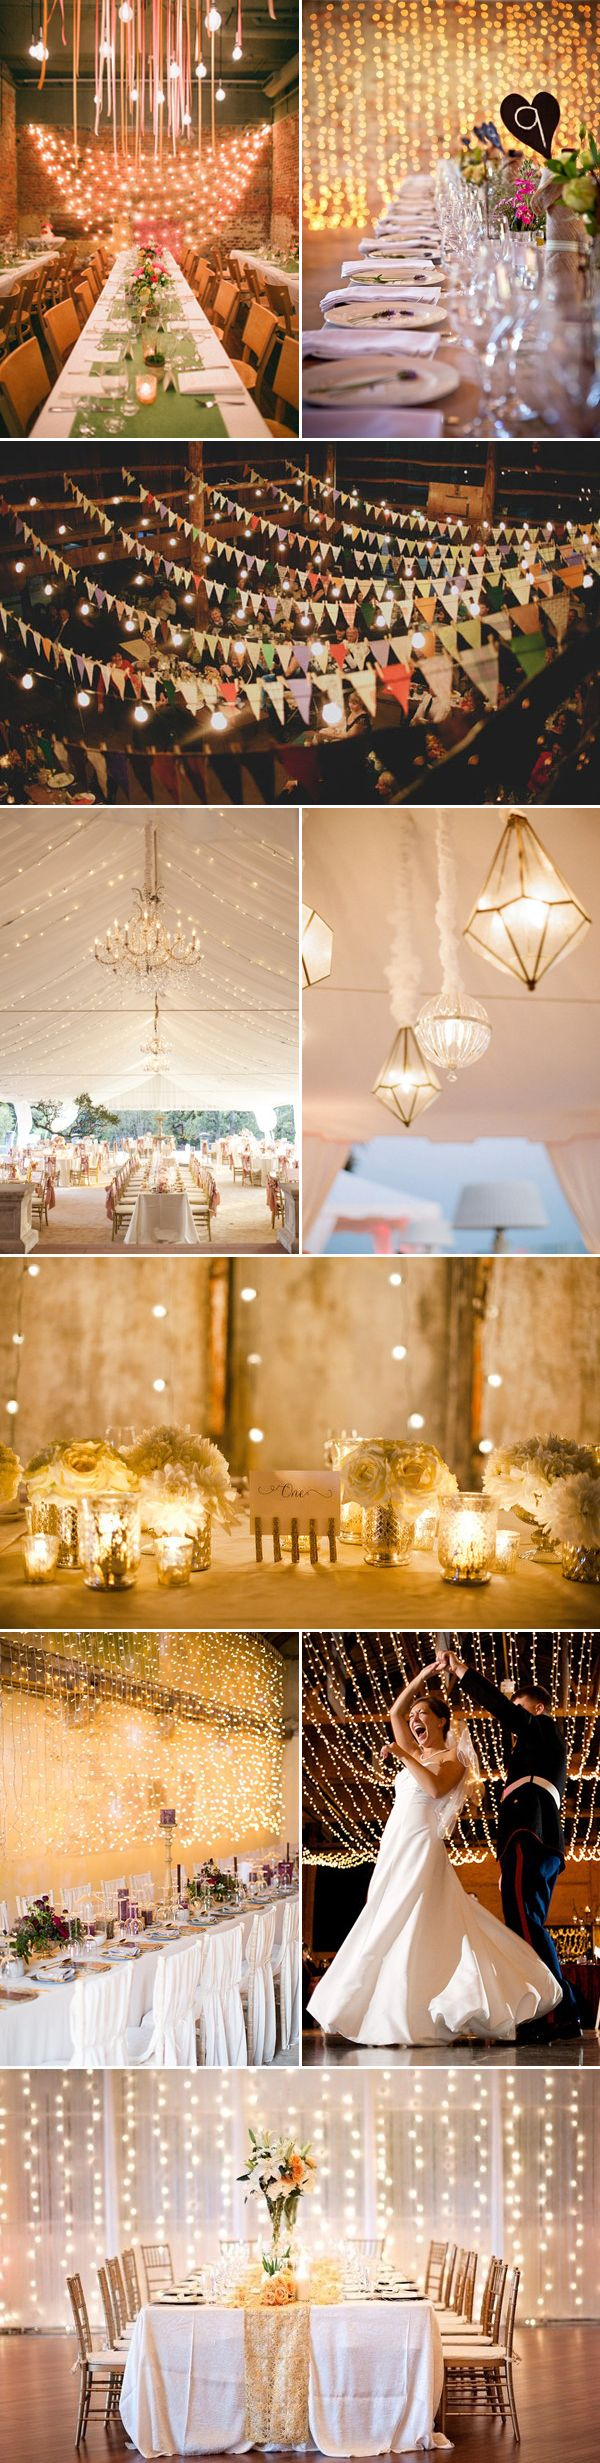 Hanging lights wedding decor   best My wedding images on Pinterest  Centerpieces Hair